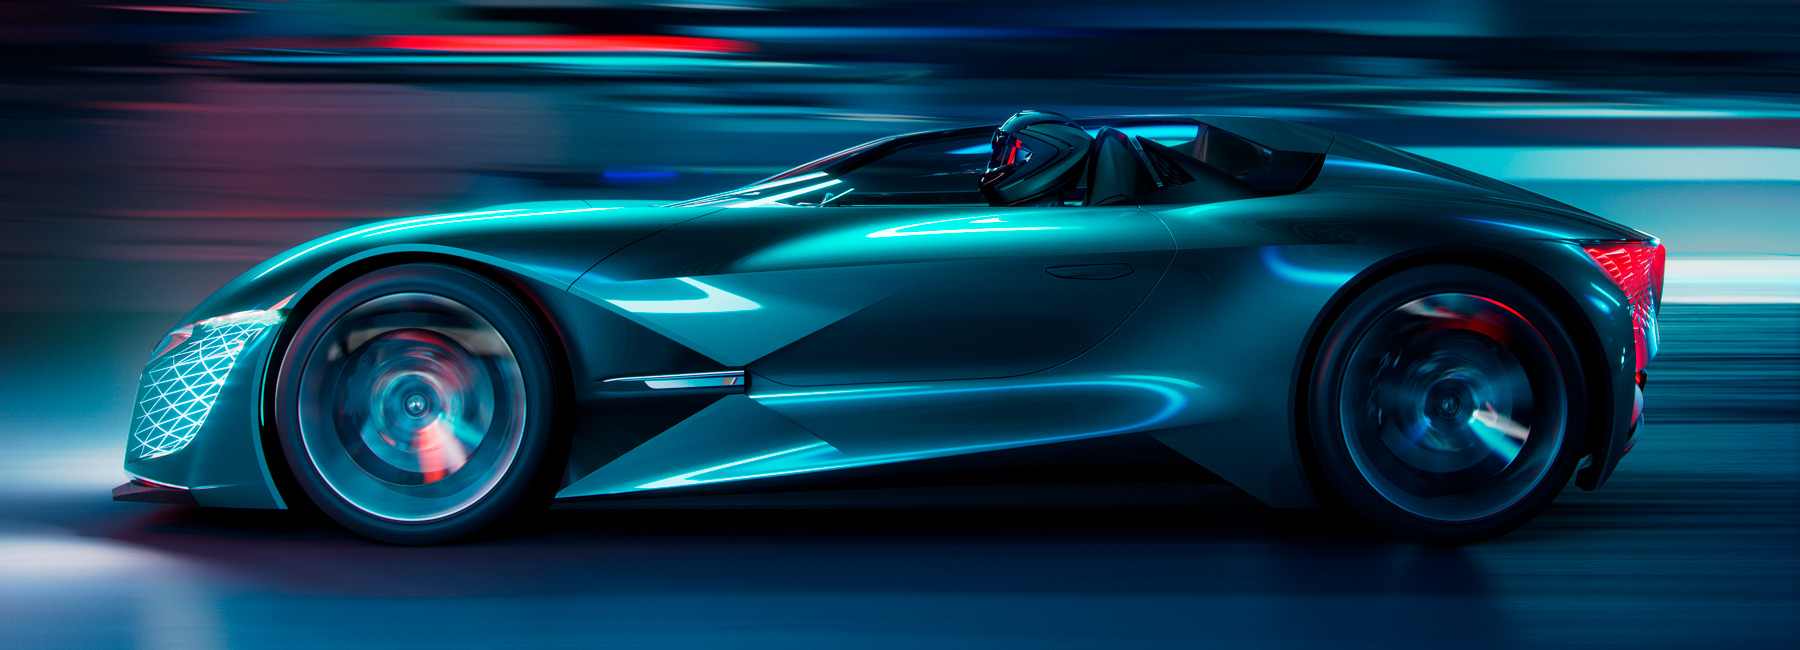 Electric Wallpaper 3d A Look Under The Hood Of The Ds X E Tense The Car From 2035